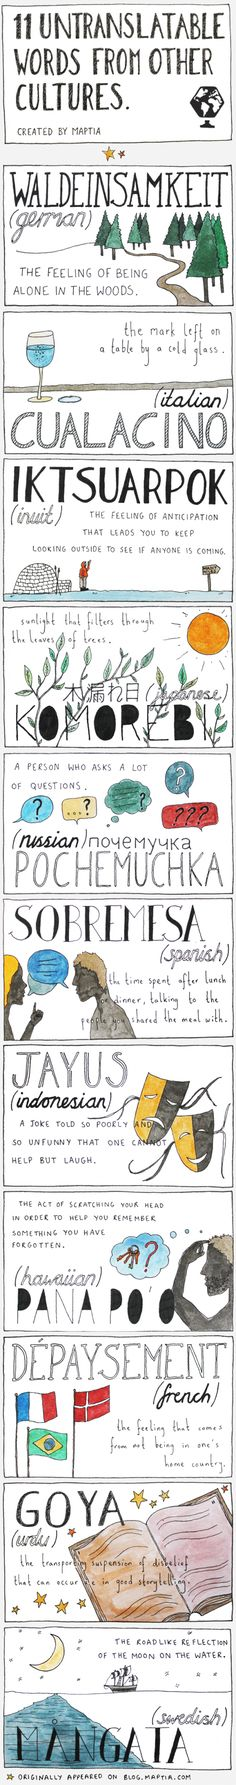 11 Untranslatable Words From Other Cultures >> love this!